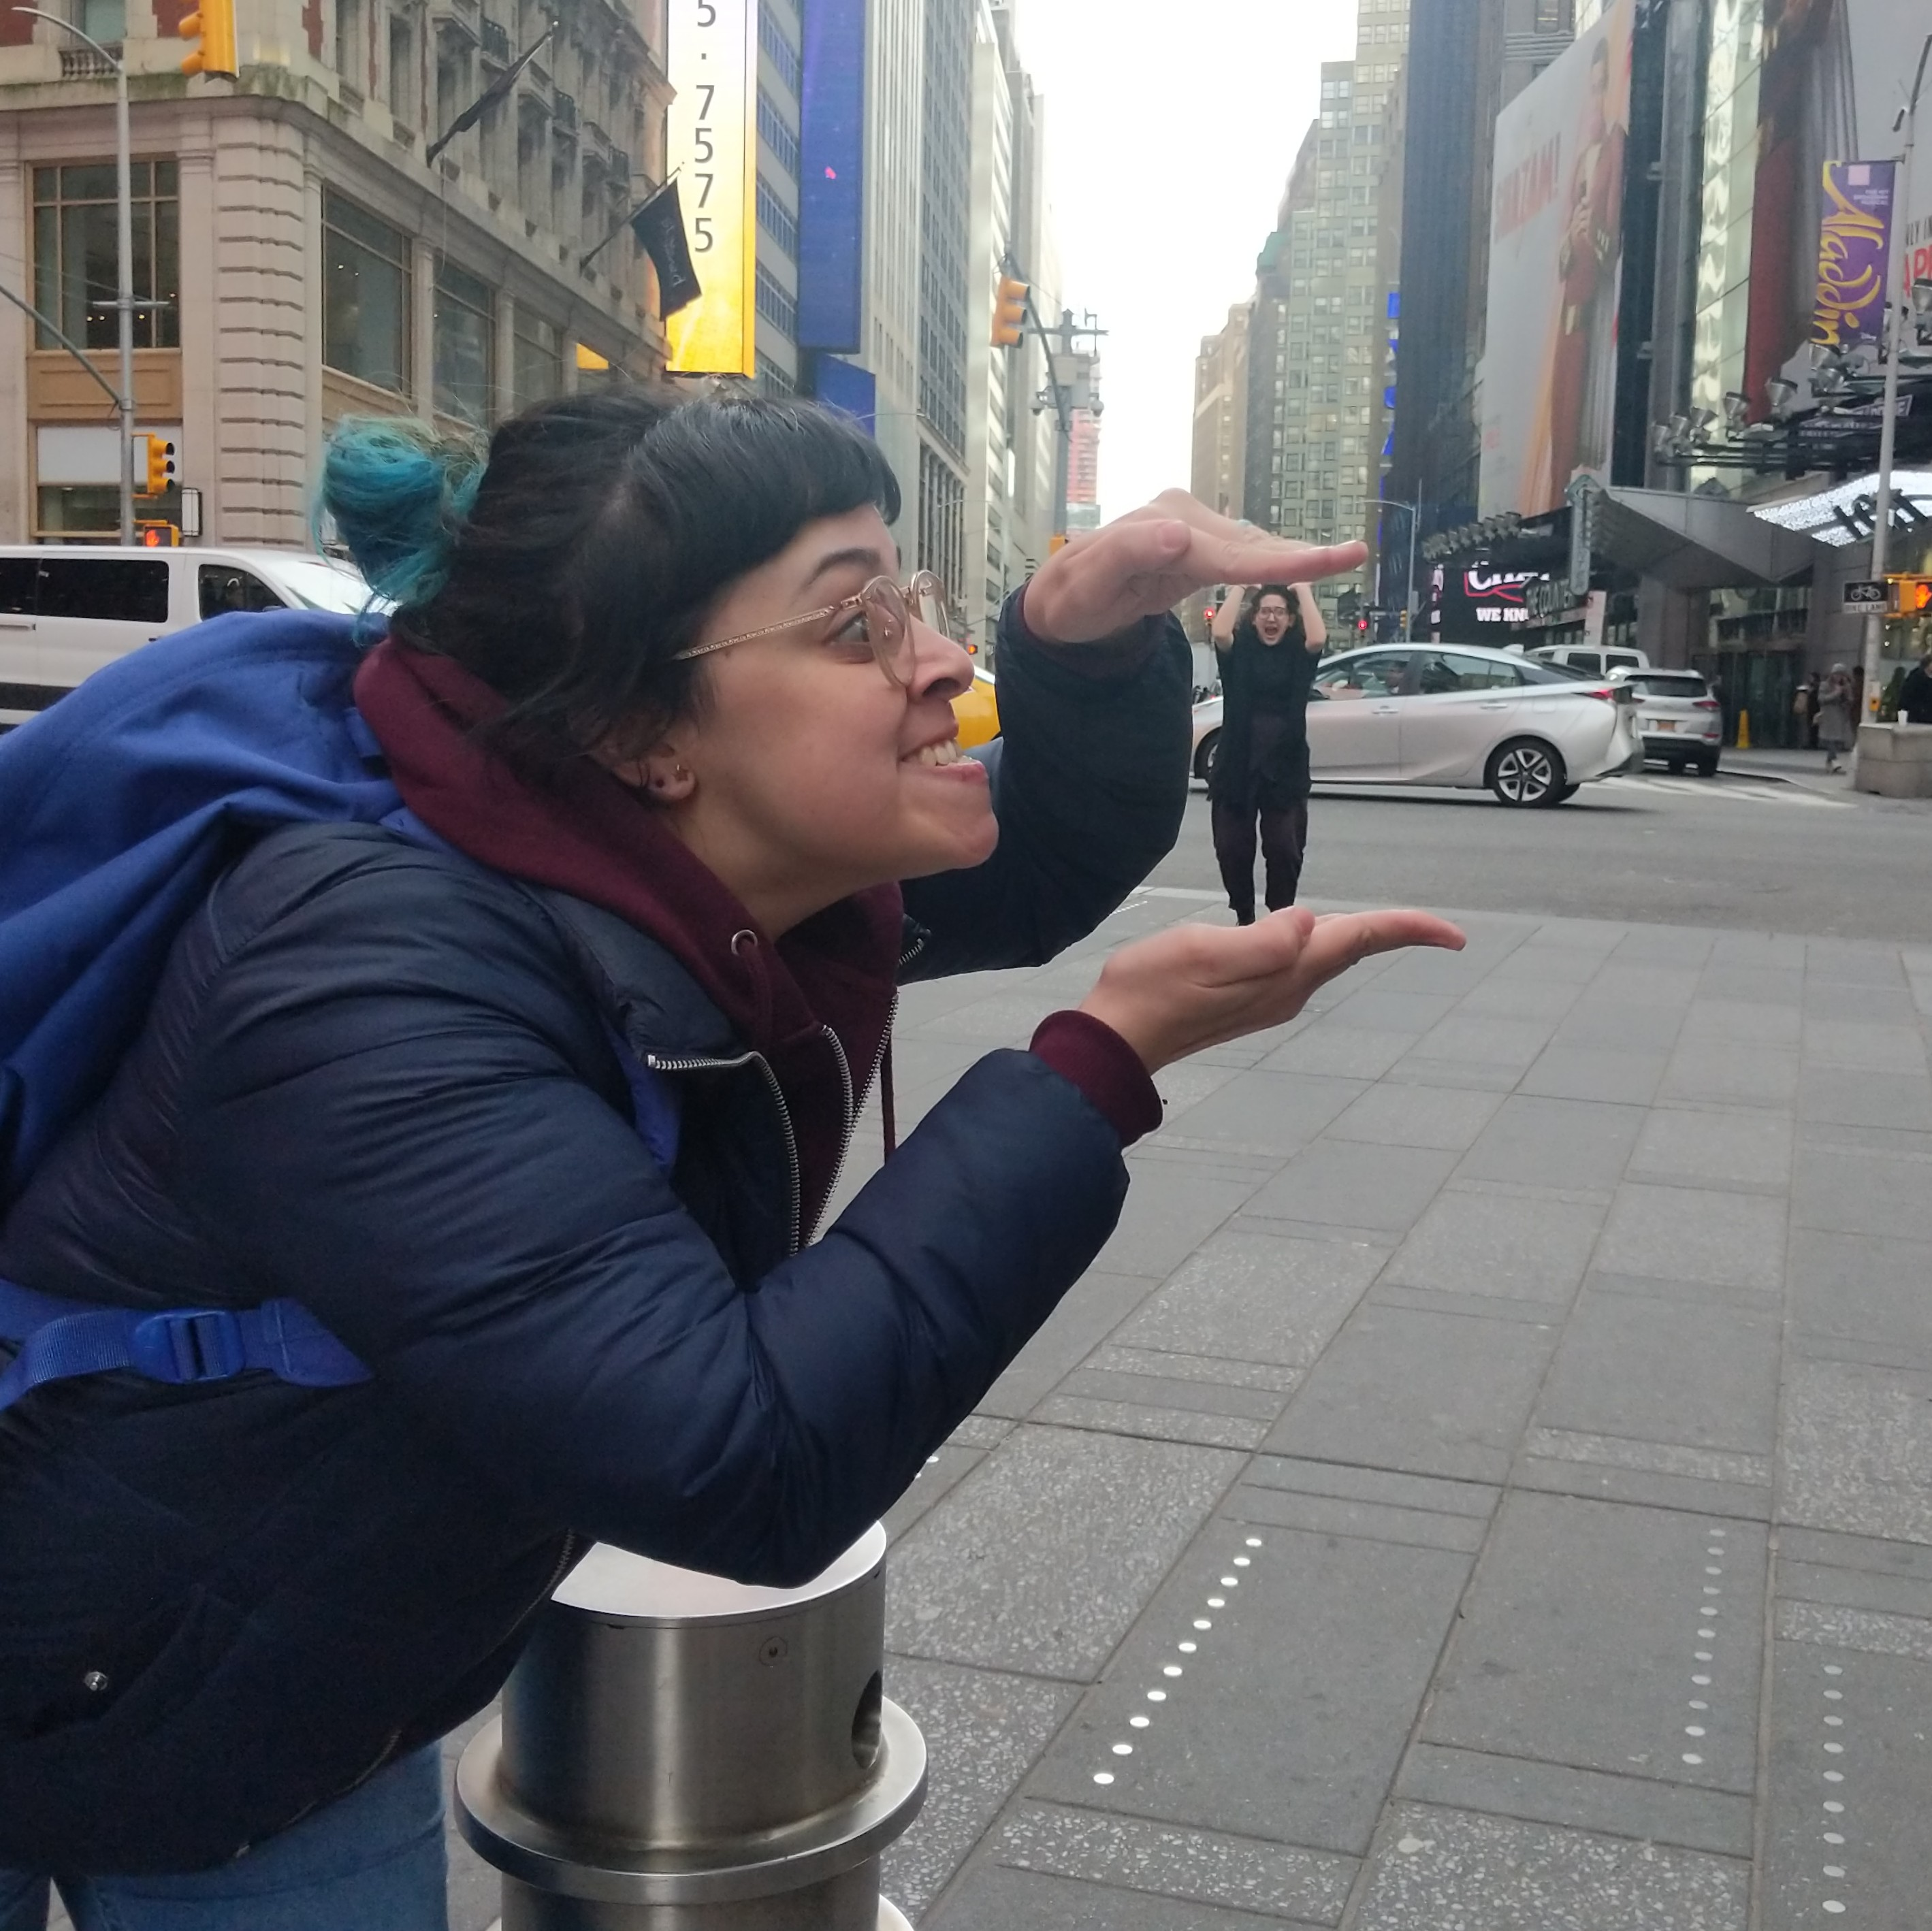 A trick of the eye photo in Times Square